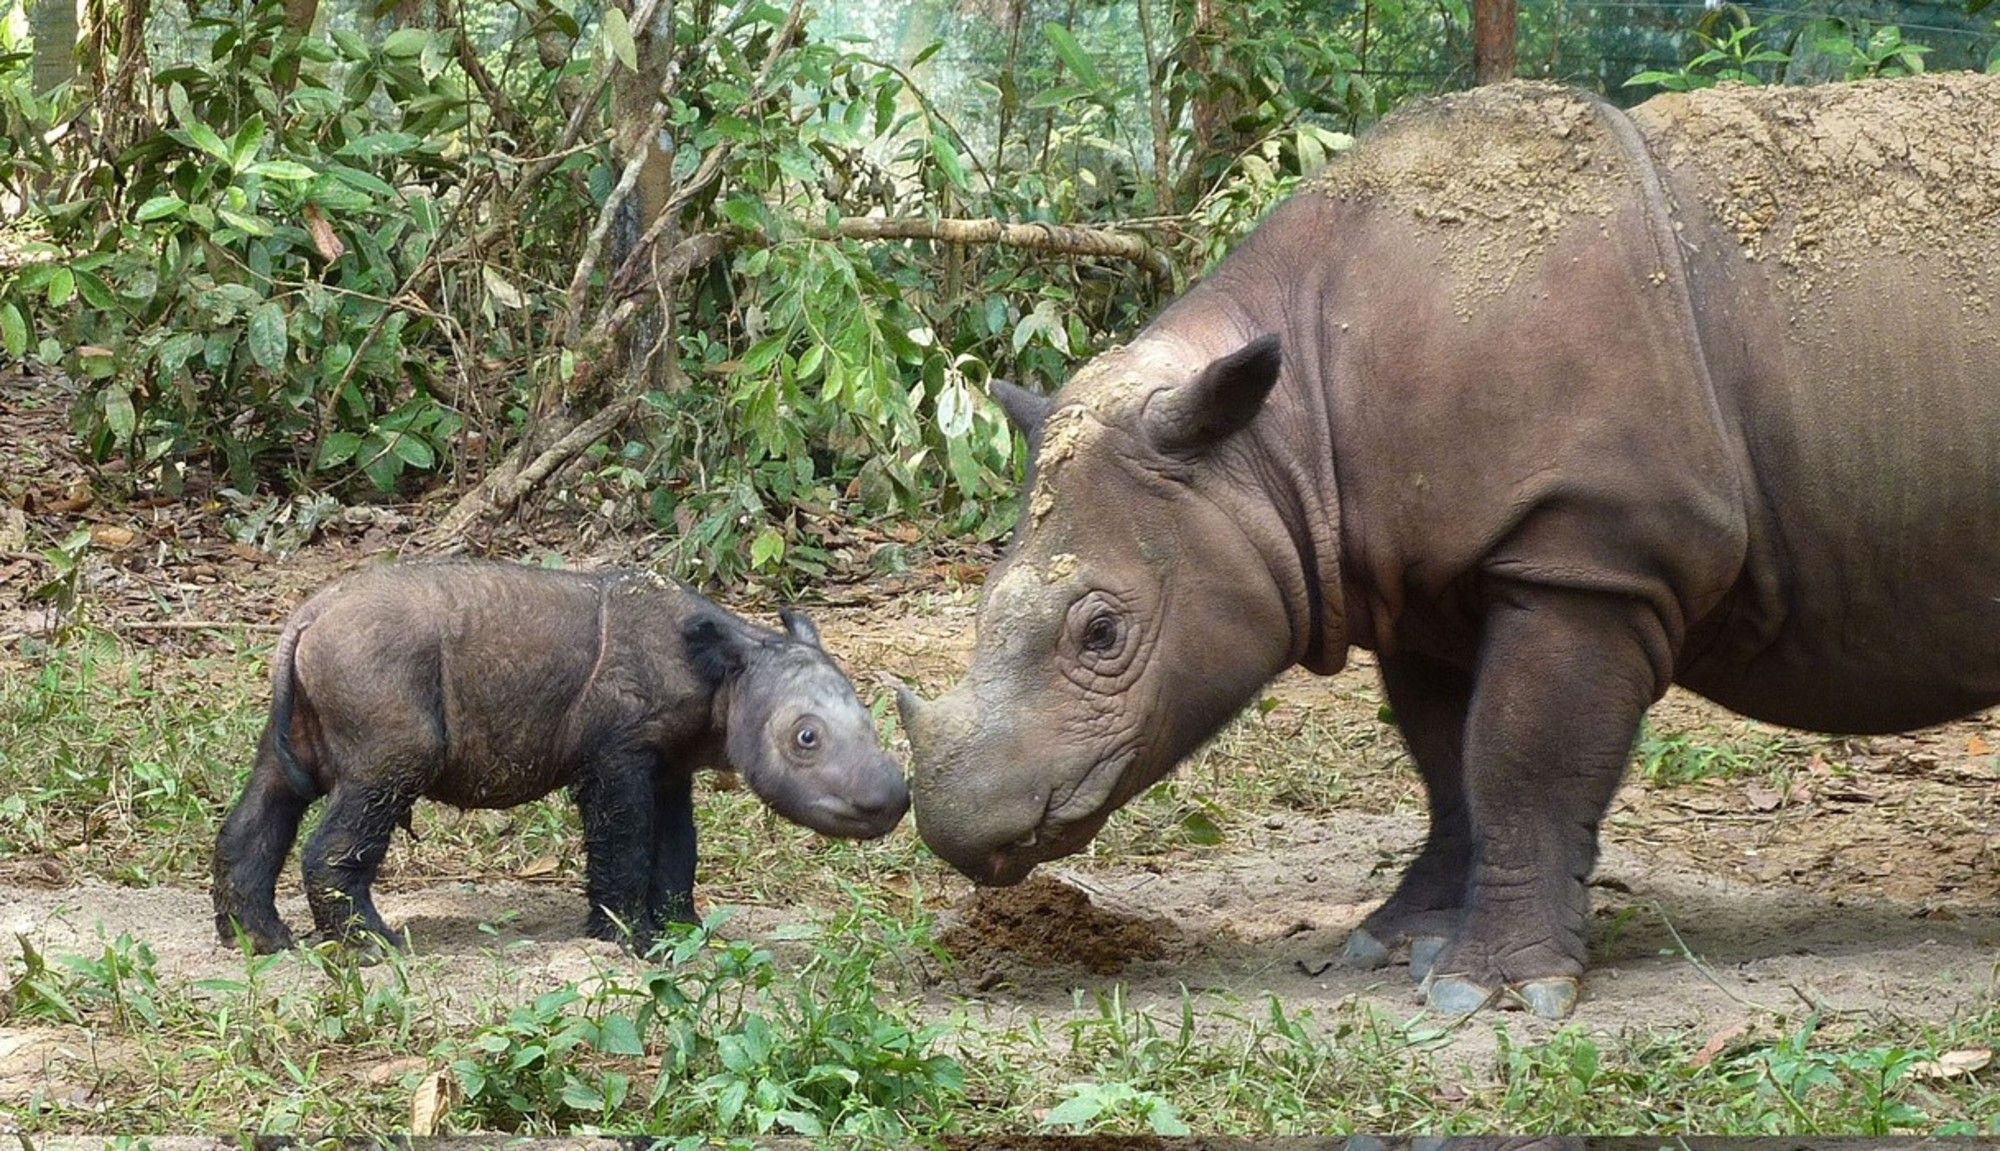 Officials in Malaysia have made the sad declaration that the Sumatran Rhino is now extinct http://t.co/gtQ5E5lBNw http://t.co/mkRJ2urM6o For the love of animals. Pass it on.